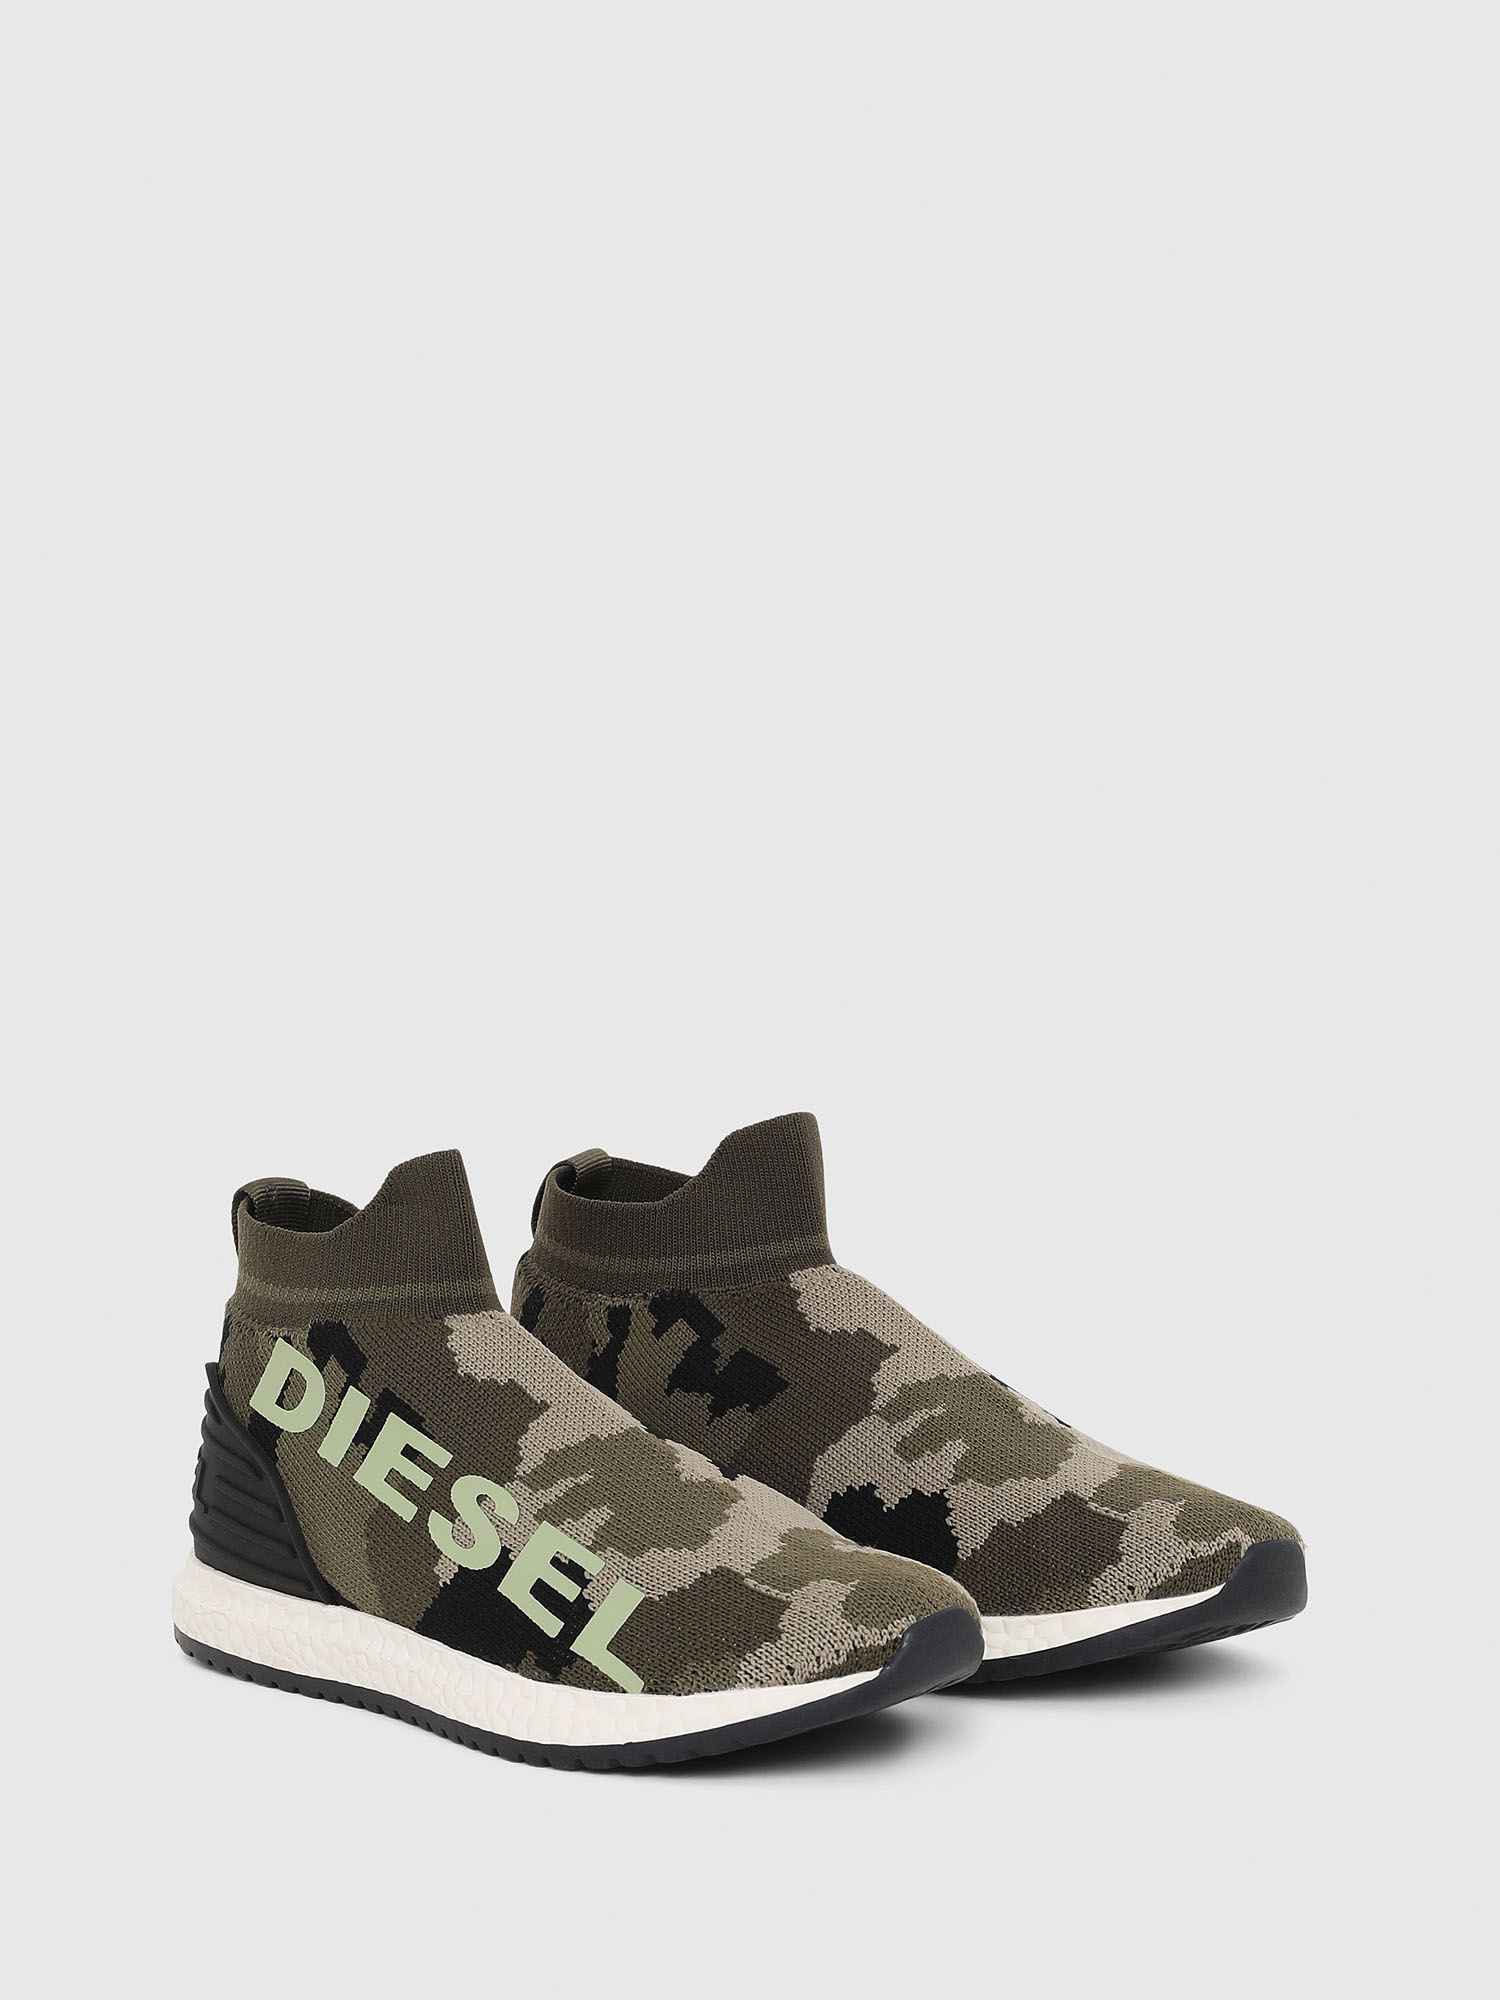 Diesel - SLIP ON 03 LOW SOCK,  - Scarpe - Image 2